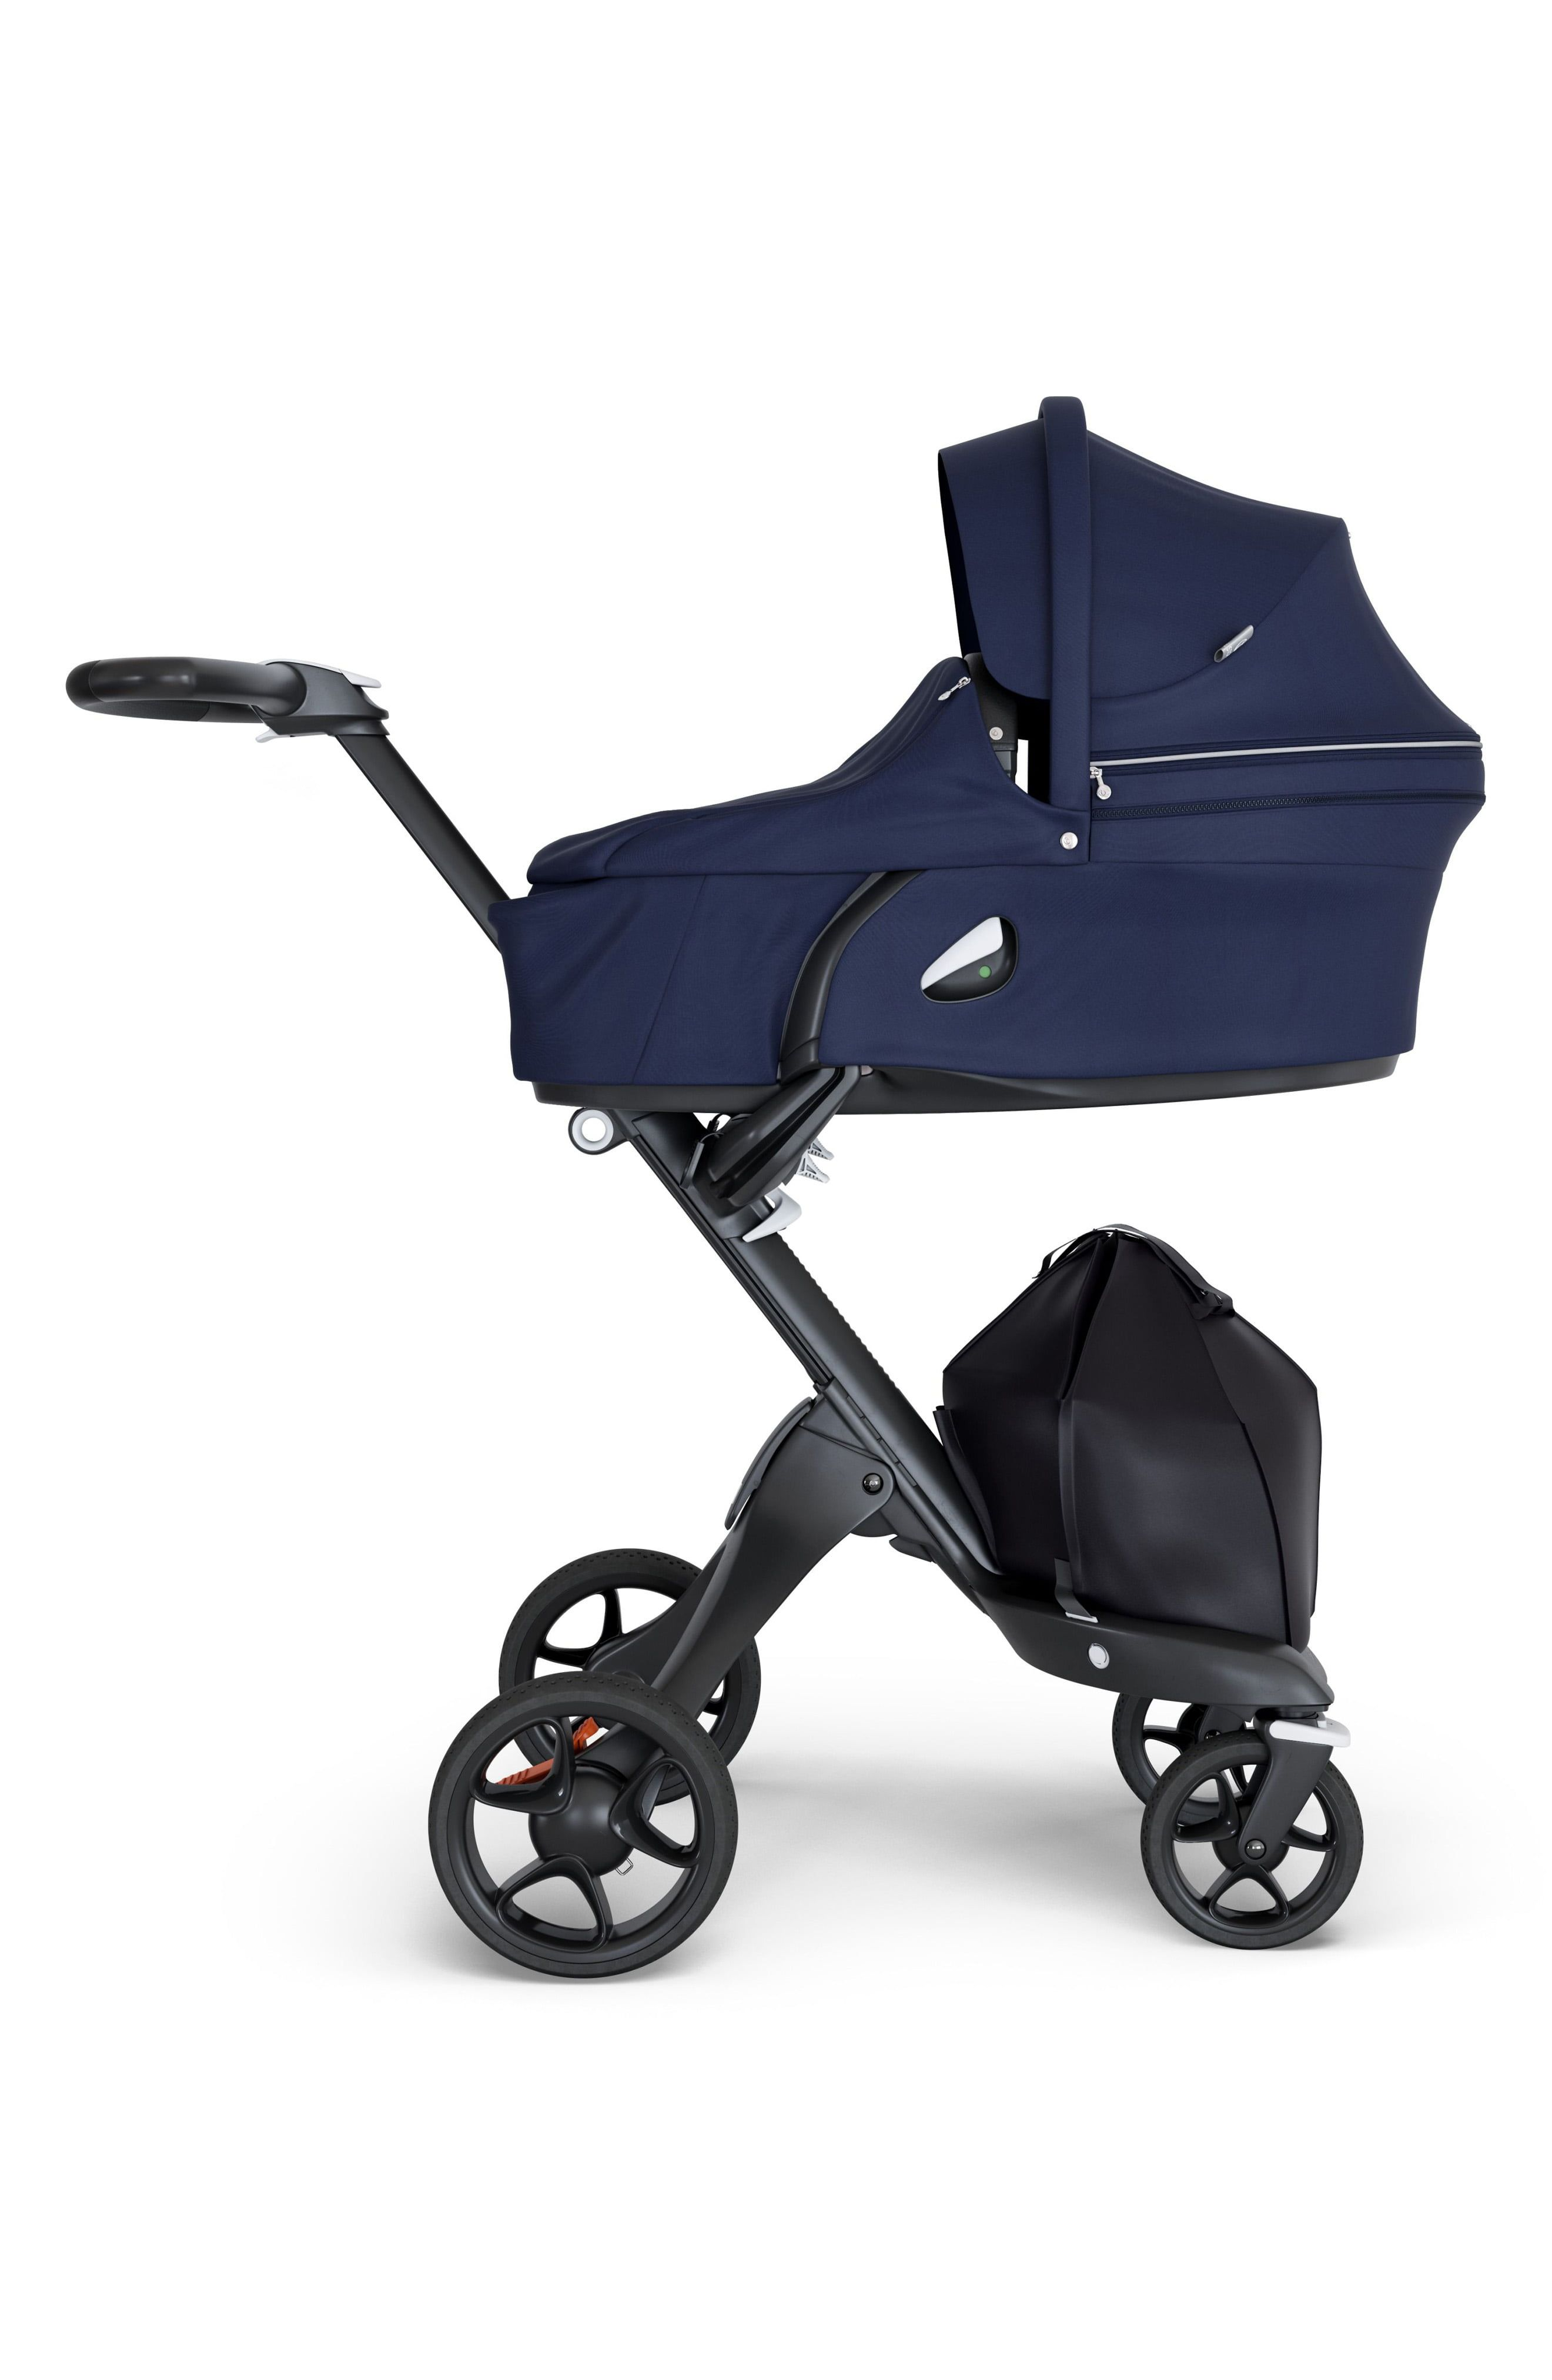 Stiftung Warentest Kinderwagen Bugaboo Infant Stokke Xplory V6 Carry Cot Size One Size Grey In